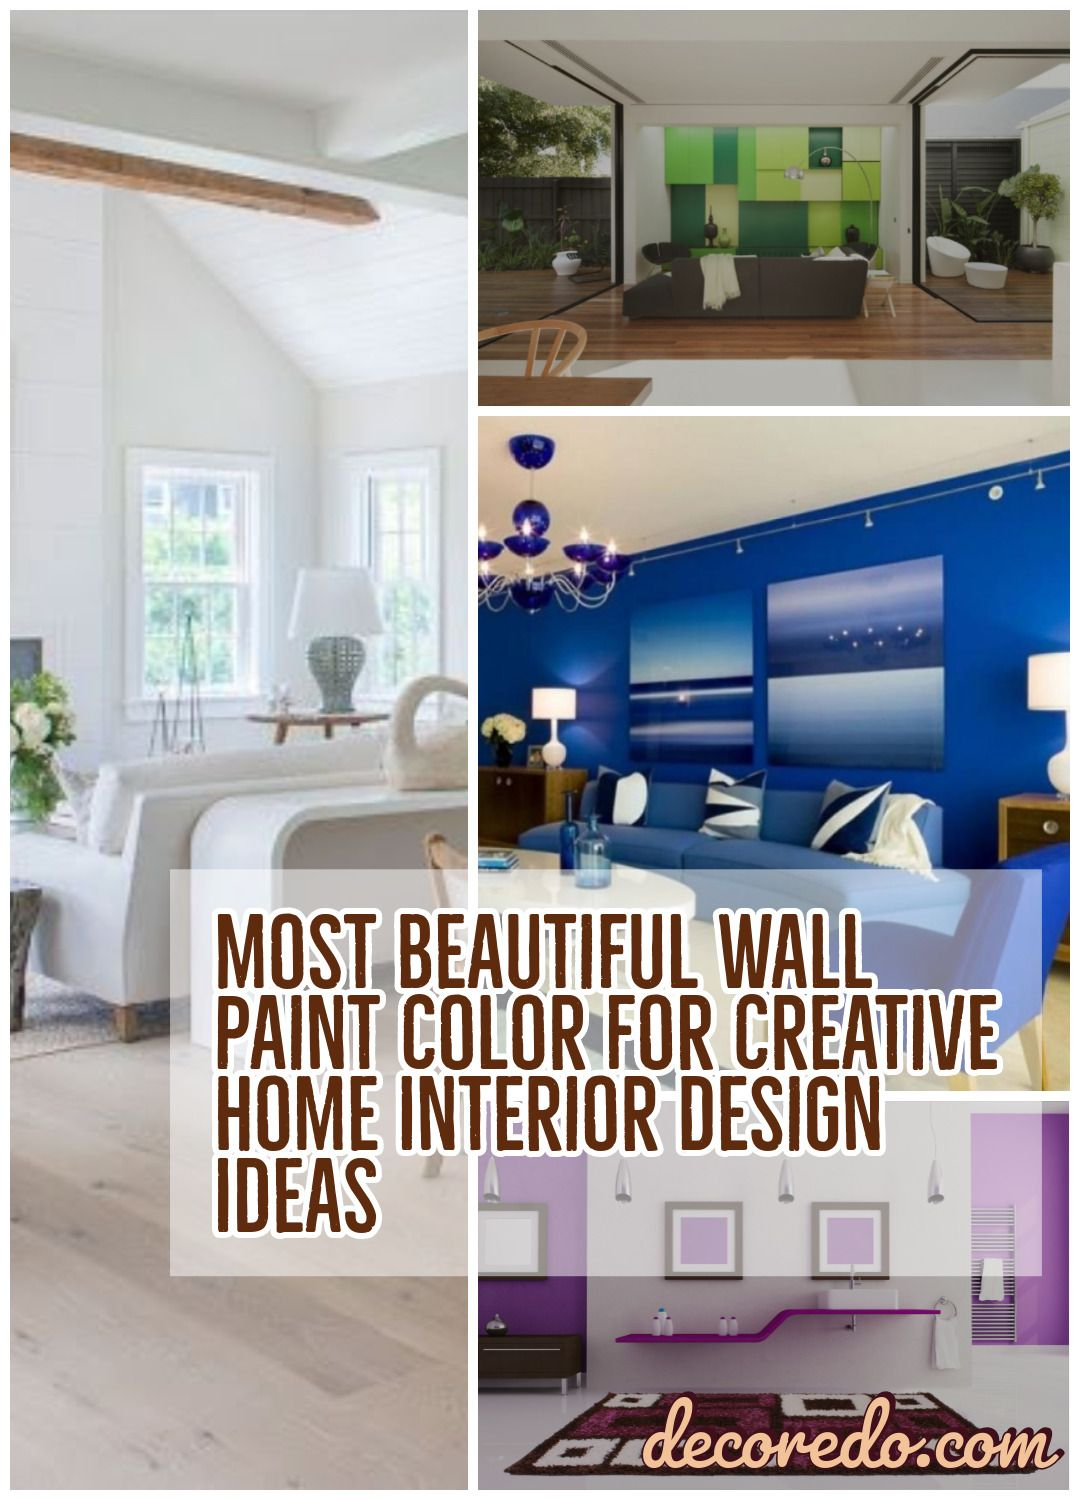 The Most Beautiful Interior Design House 2021 In 2020 Beautiful Interiors Home Interior Design Wall Paint Colors